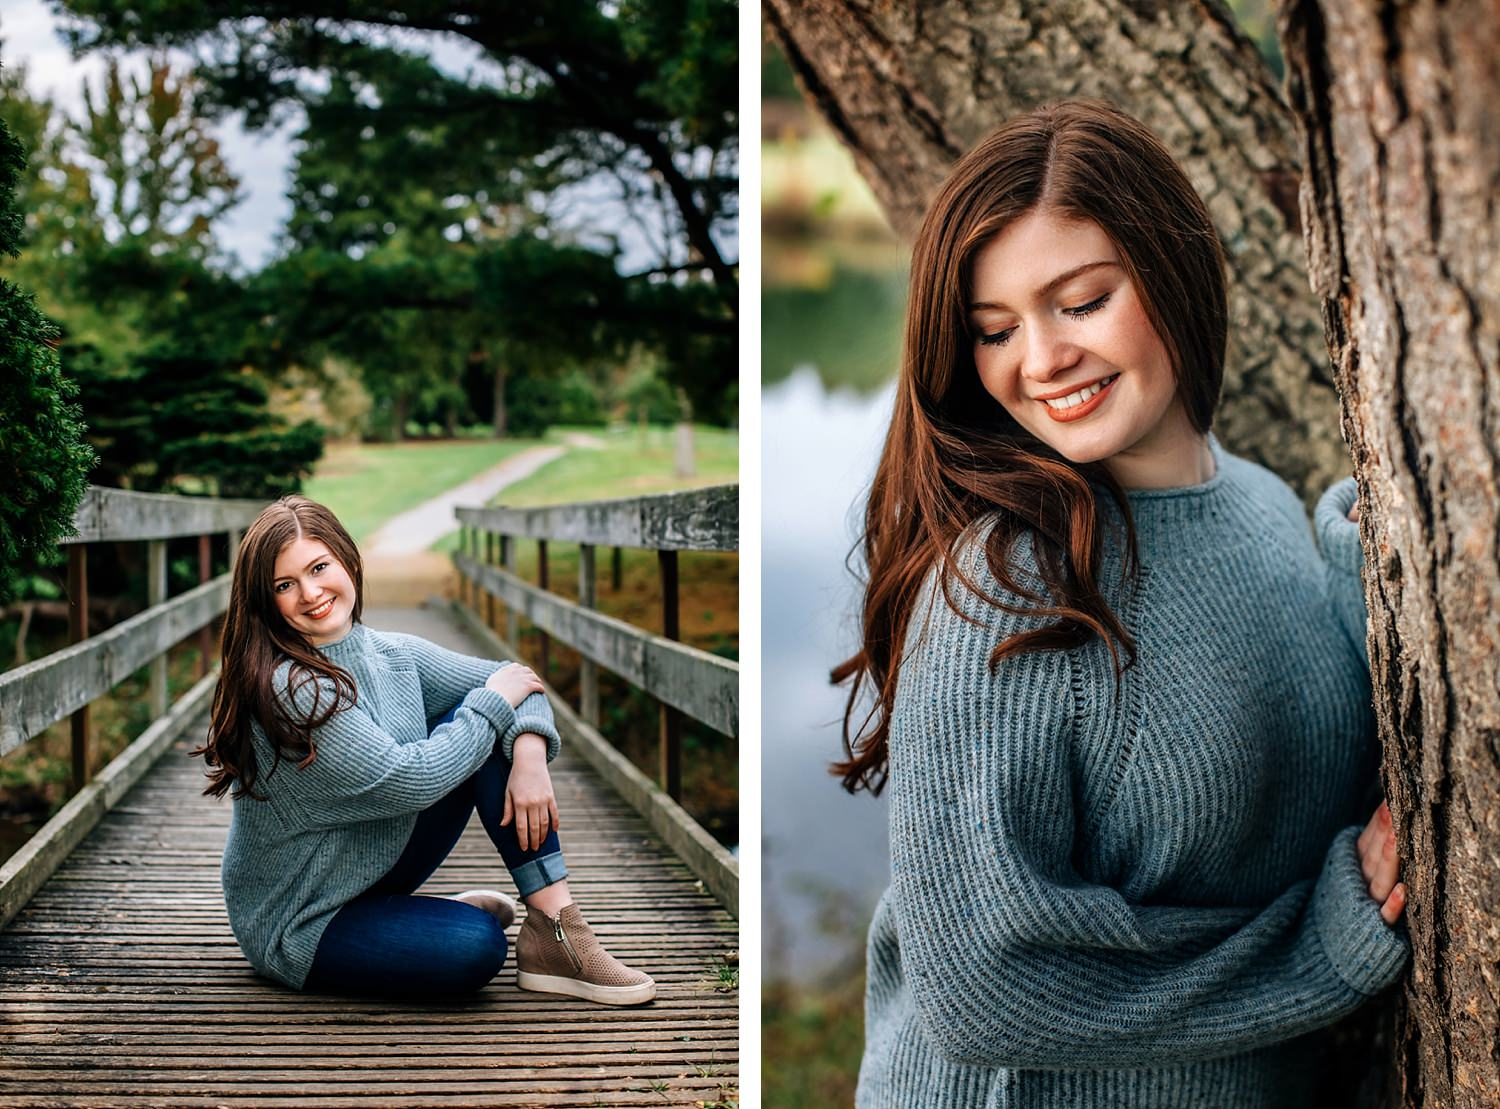 senior portrait of girl outside in nature on bridge and leaning against tree